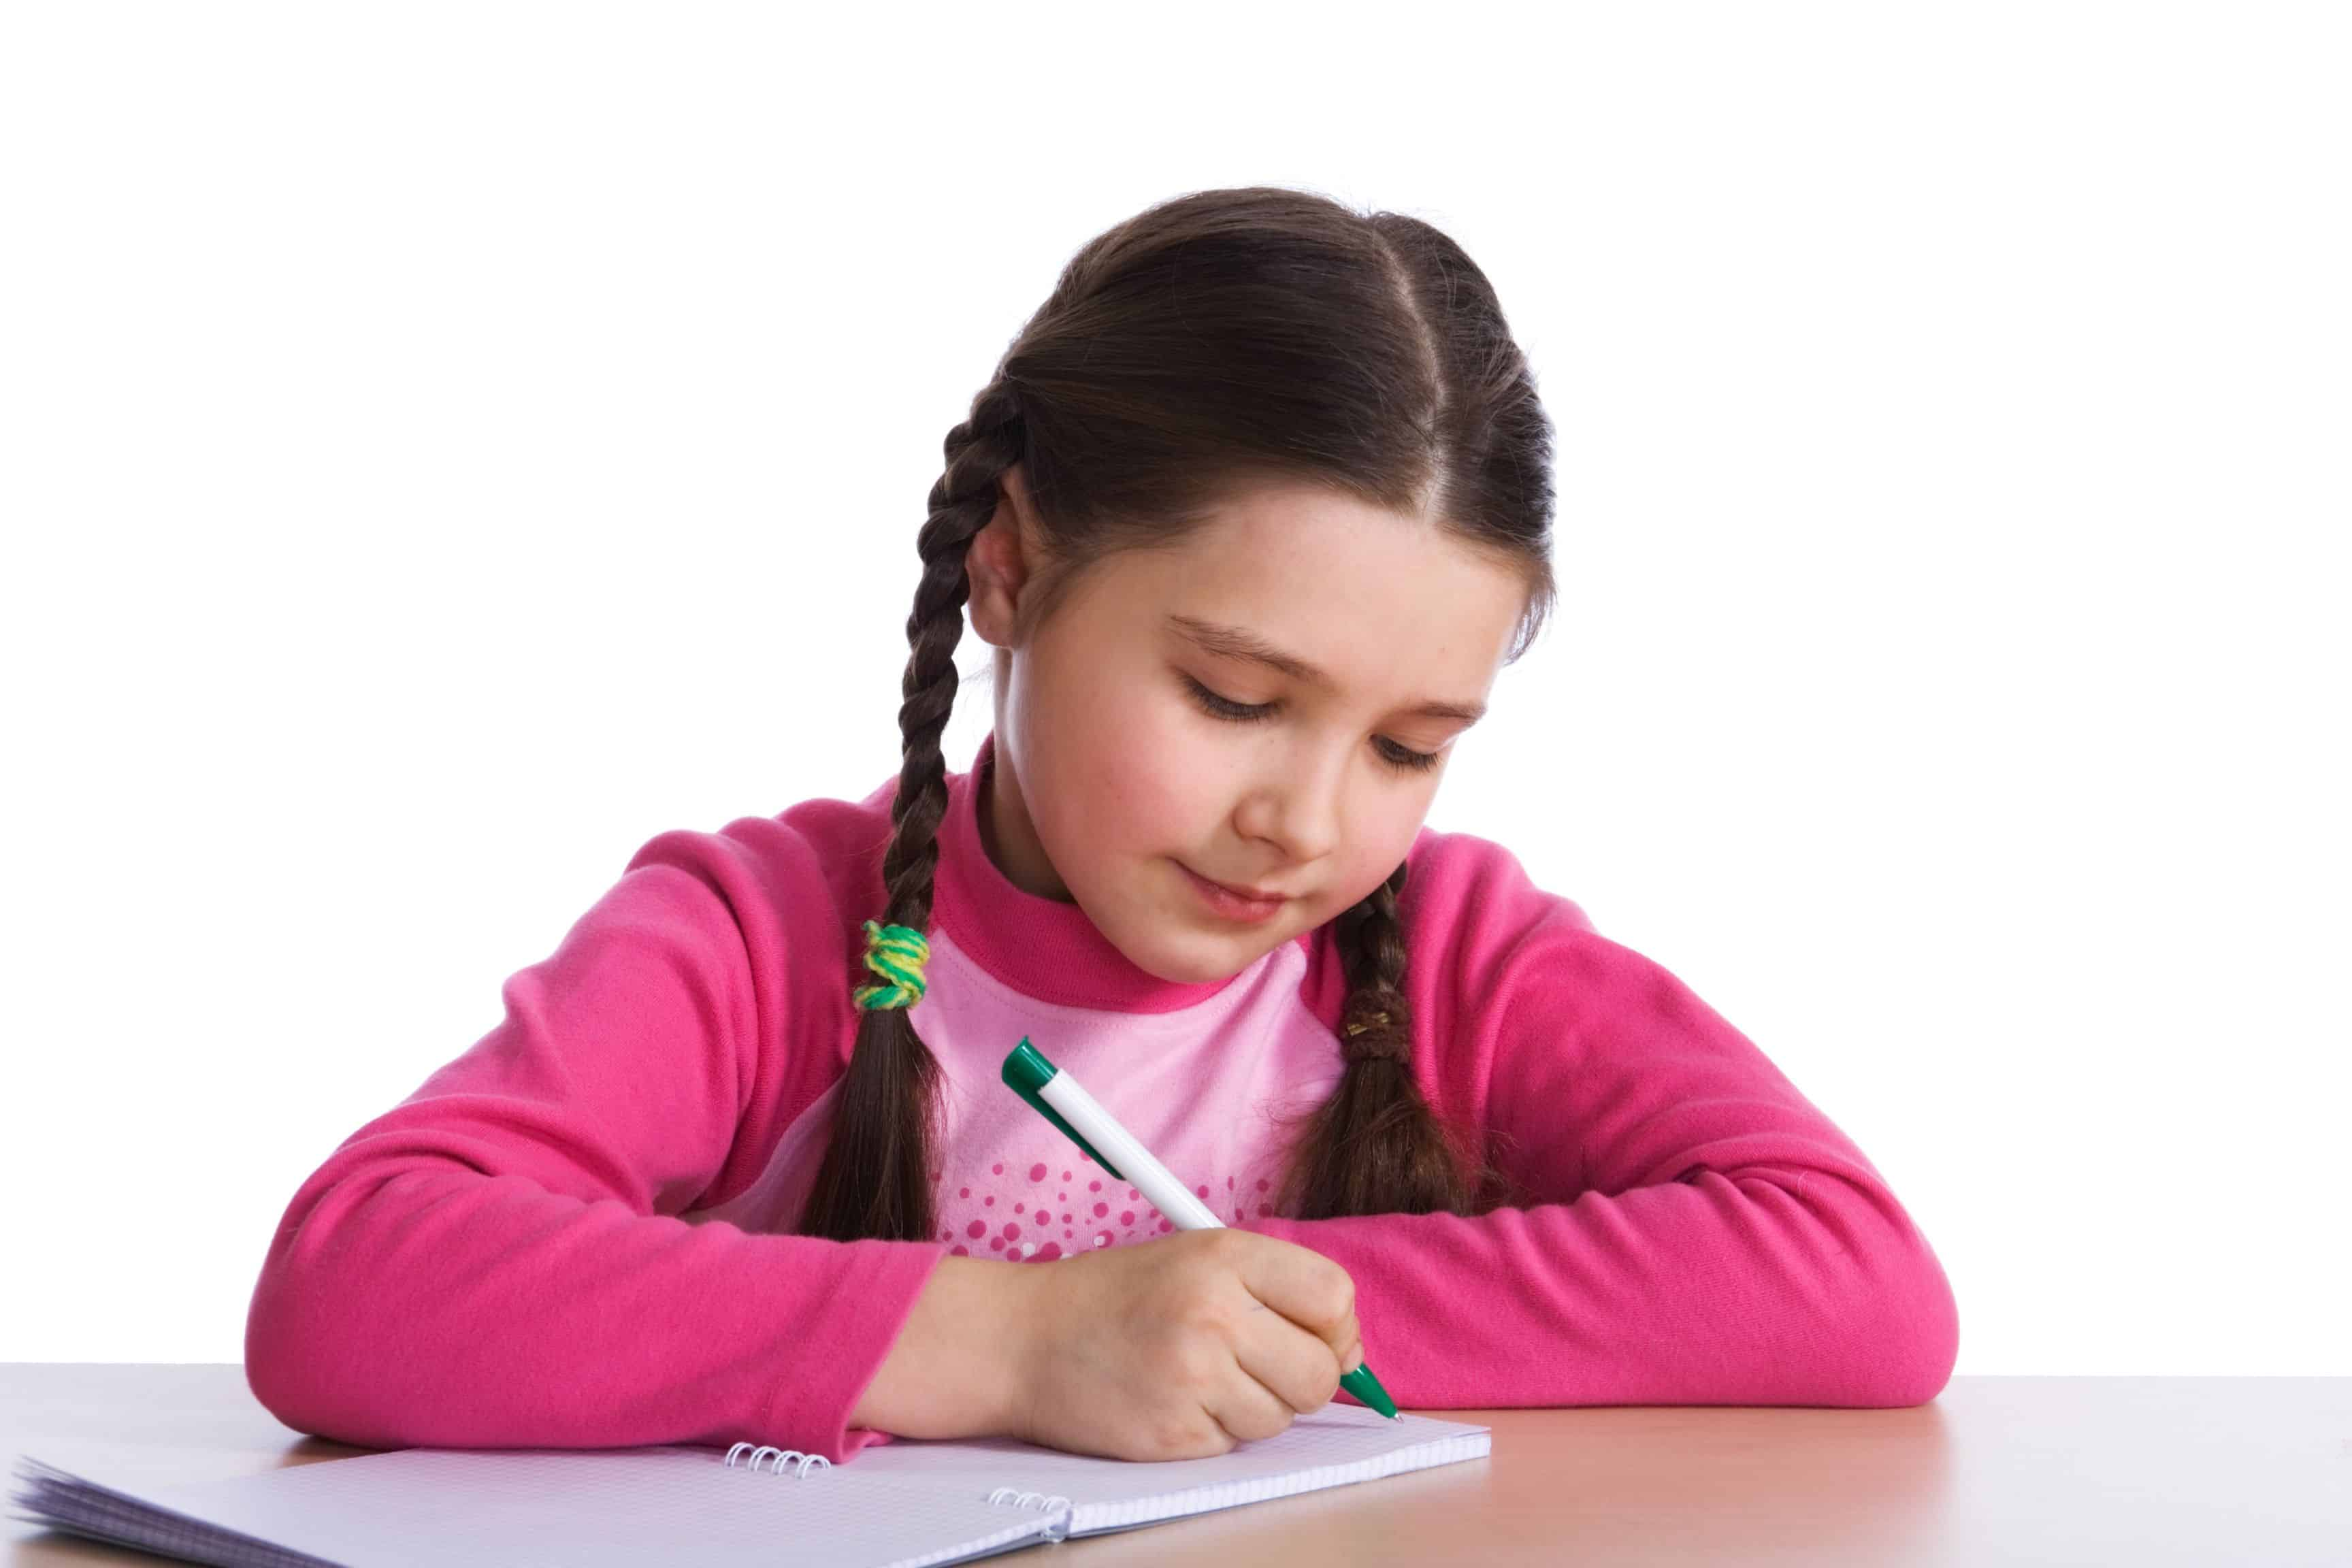 Worksheet Help Your Child Focus help your adhd child focus on completing homework